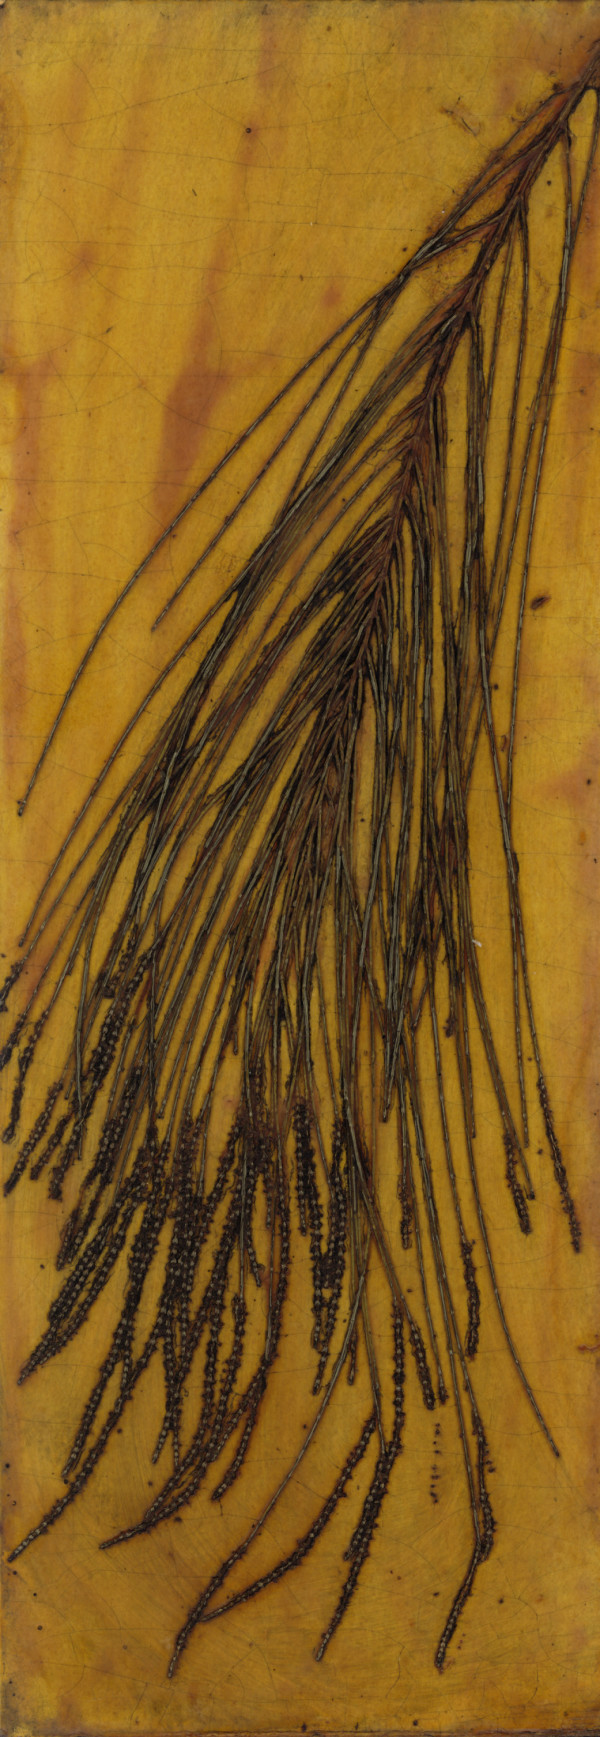 Casuarina with Male Flowers 2 Plate by Jacky Lowry